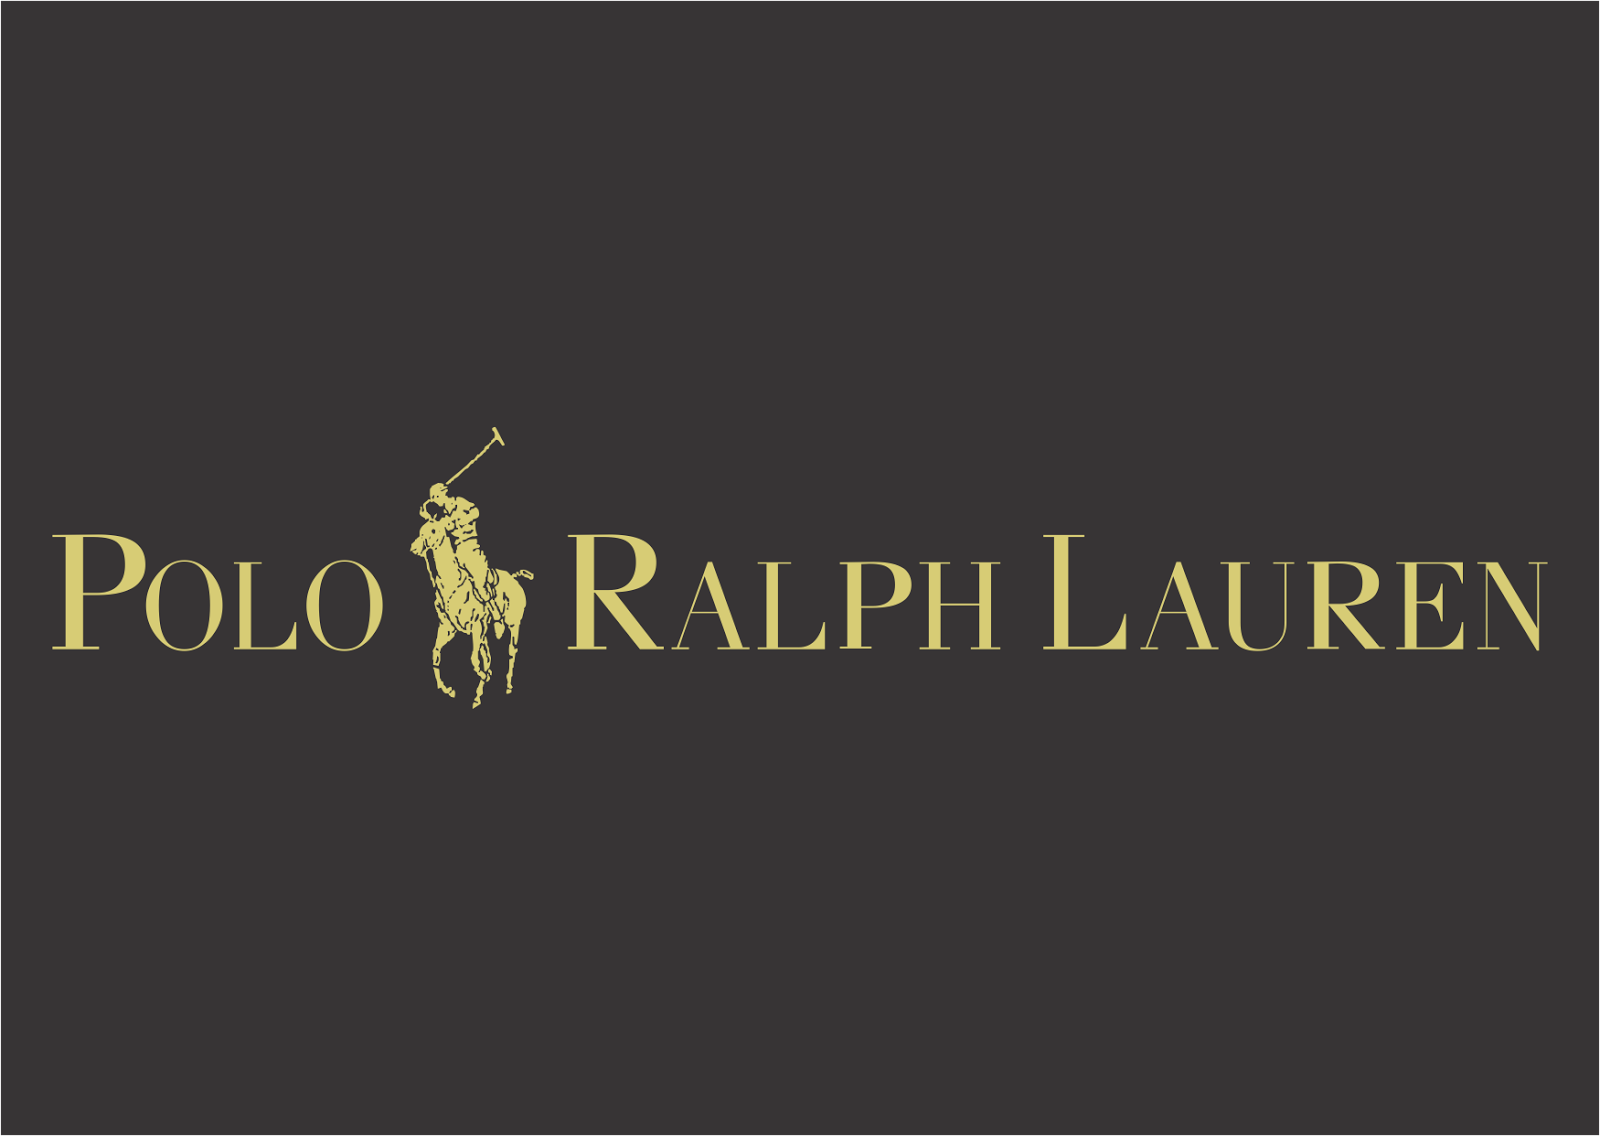 Ralph Lauren Kids Baby Gift Shop. Whether you're shopping for your own little one, or you're getting a gift for a friend or family member, the Ralph Lauren kids baby gift shop is a great option for finding the right gift every time.